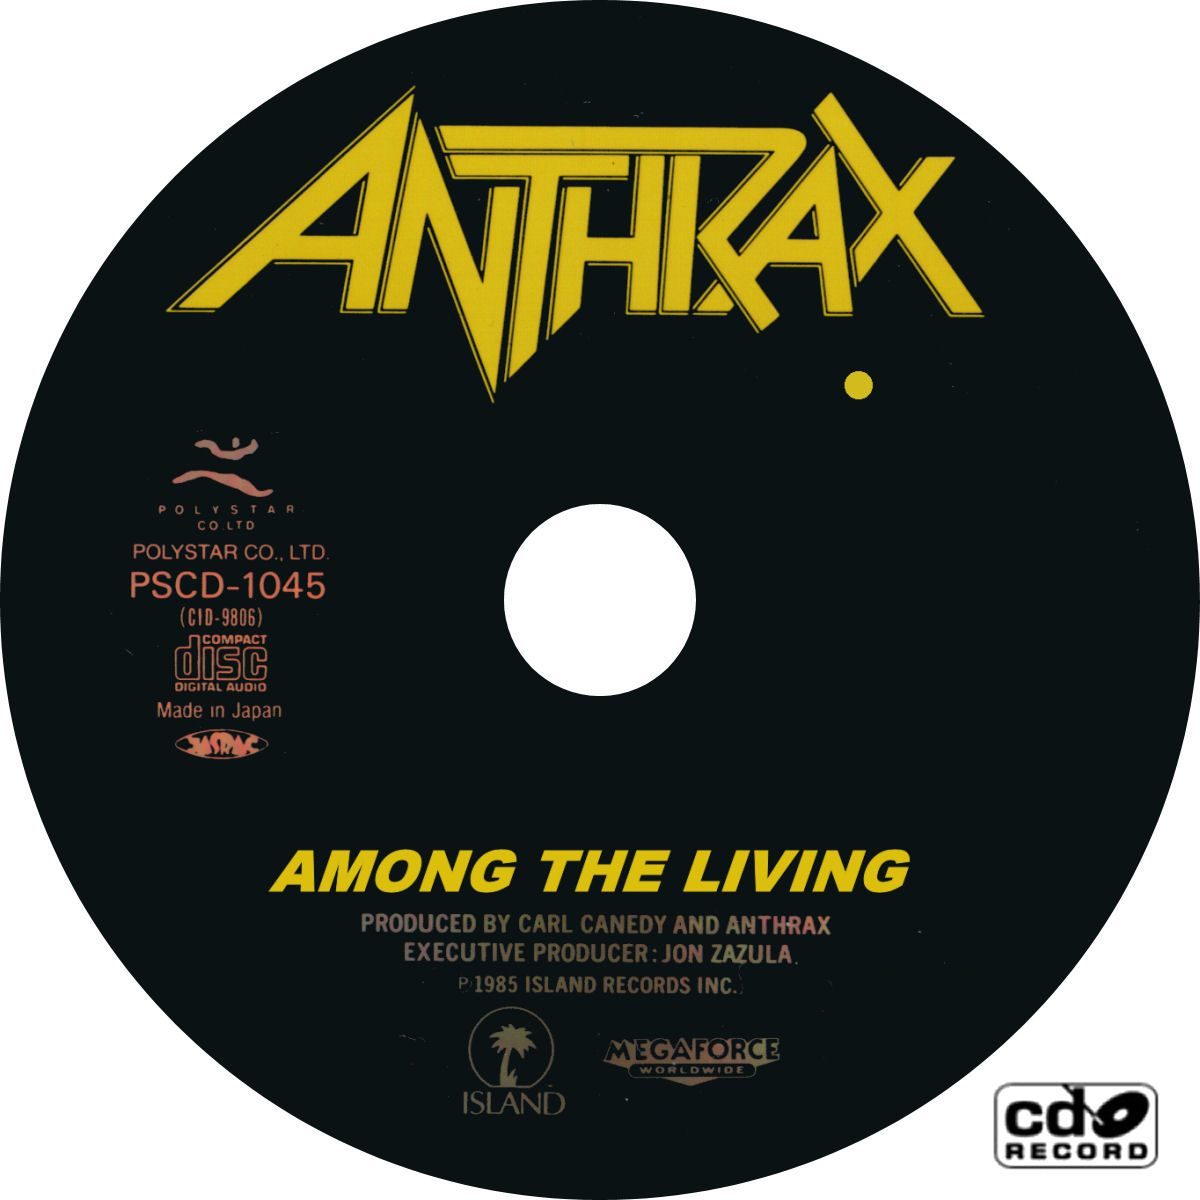 Copertina cd Anthrax - Among The Living - CD, cover cd ...